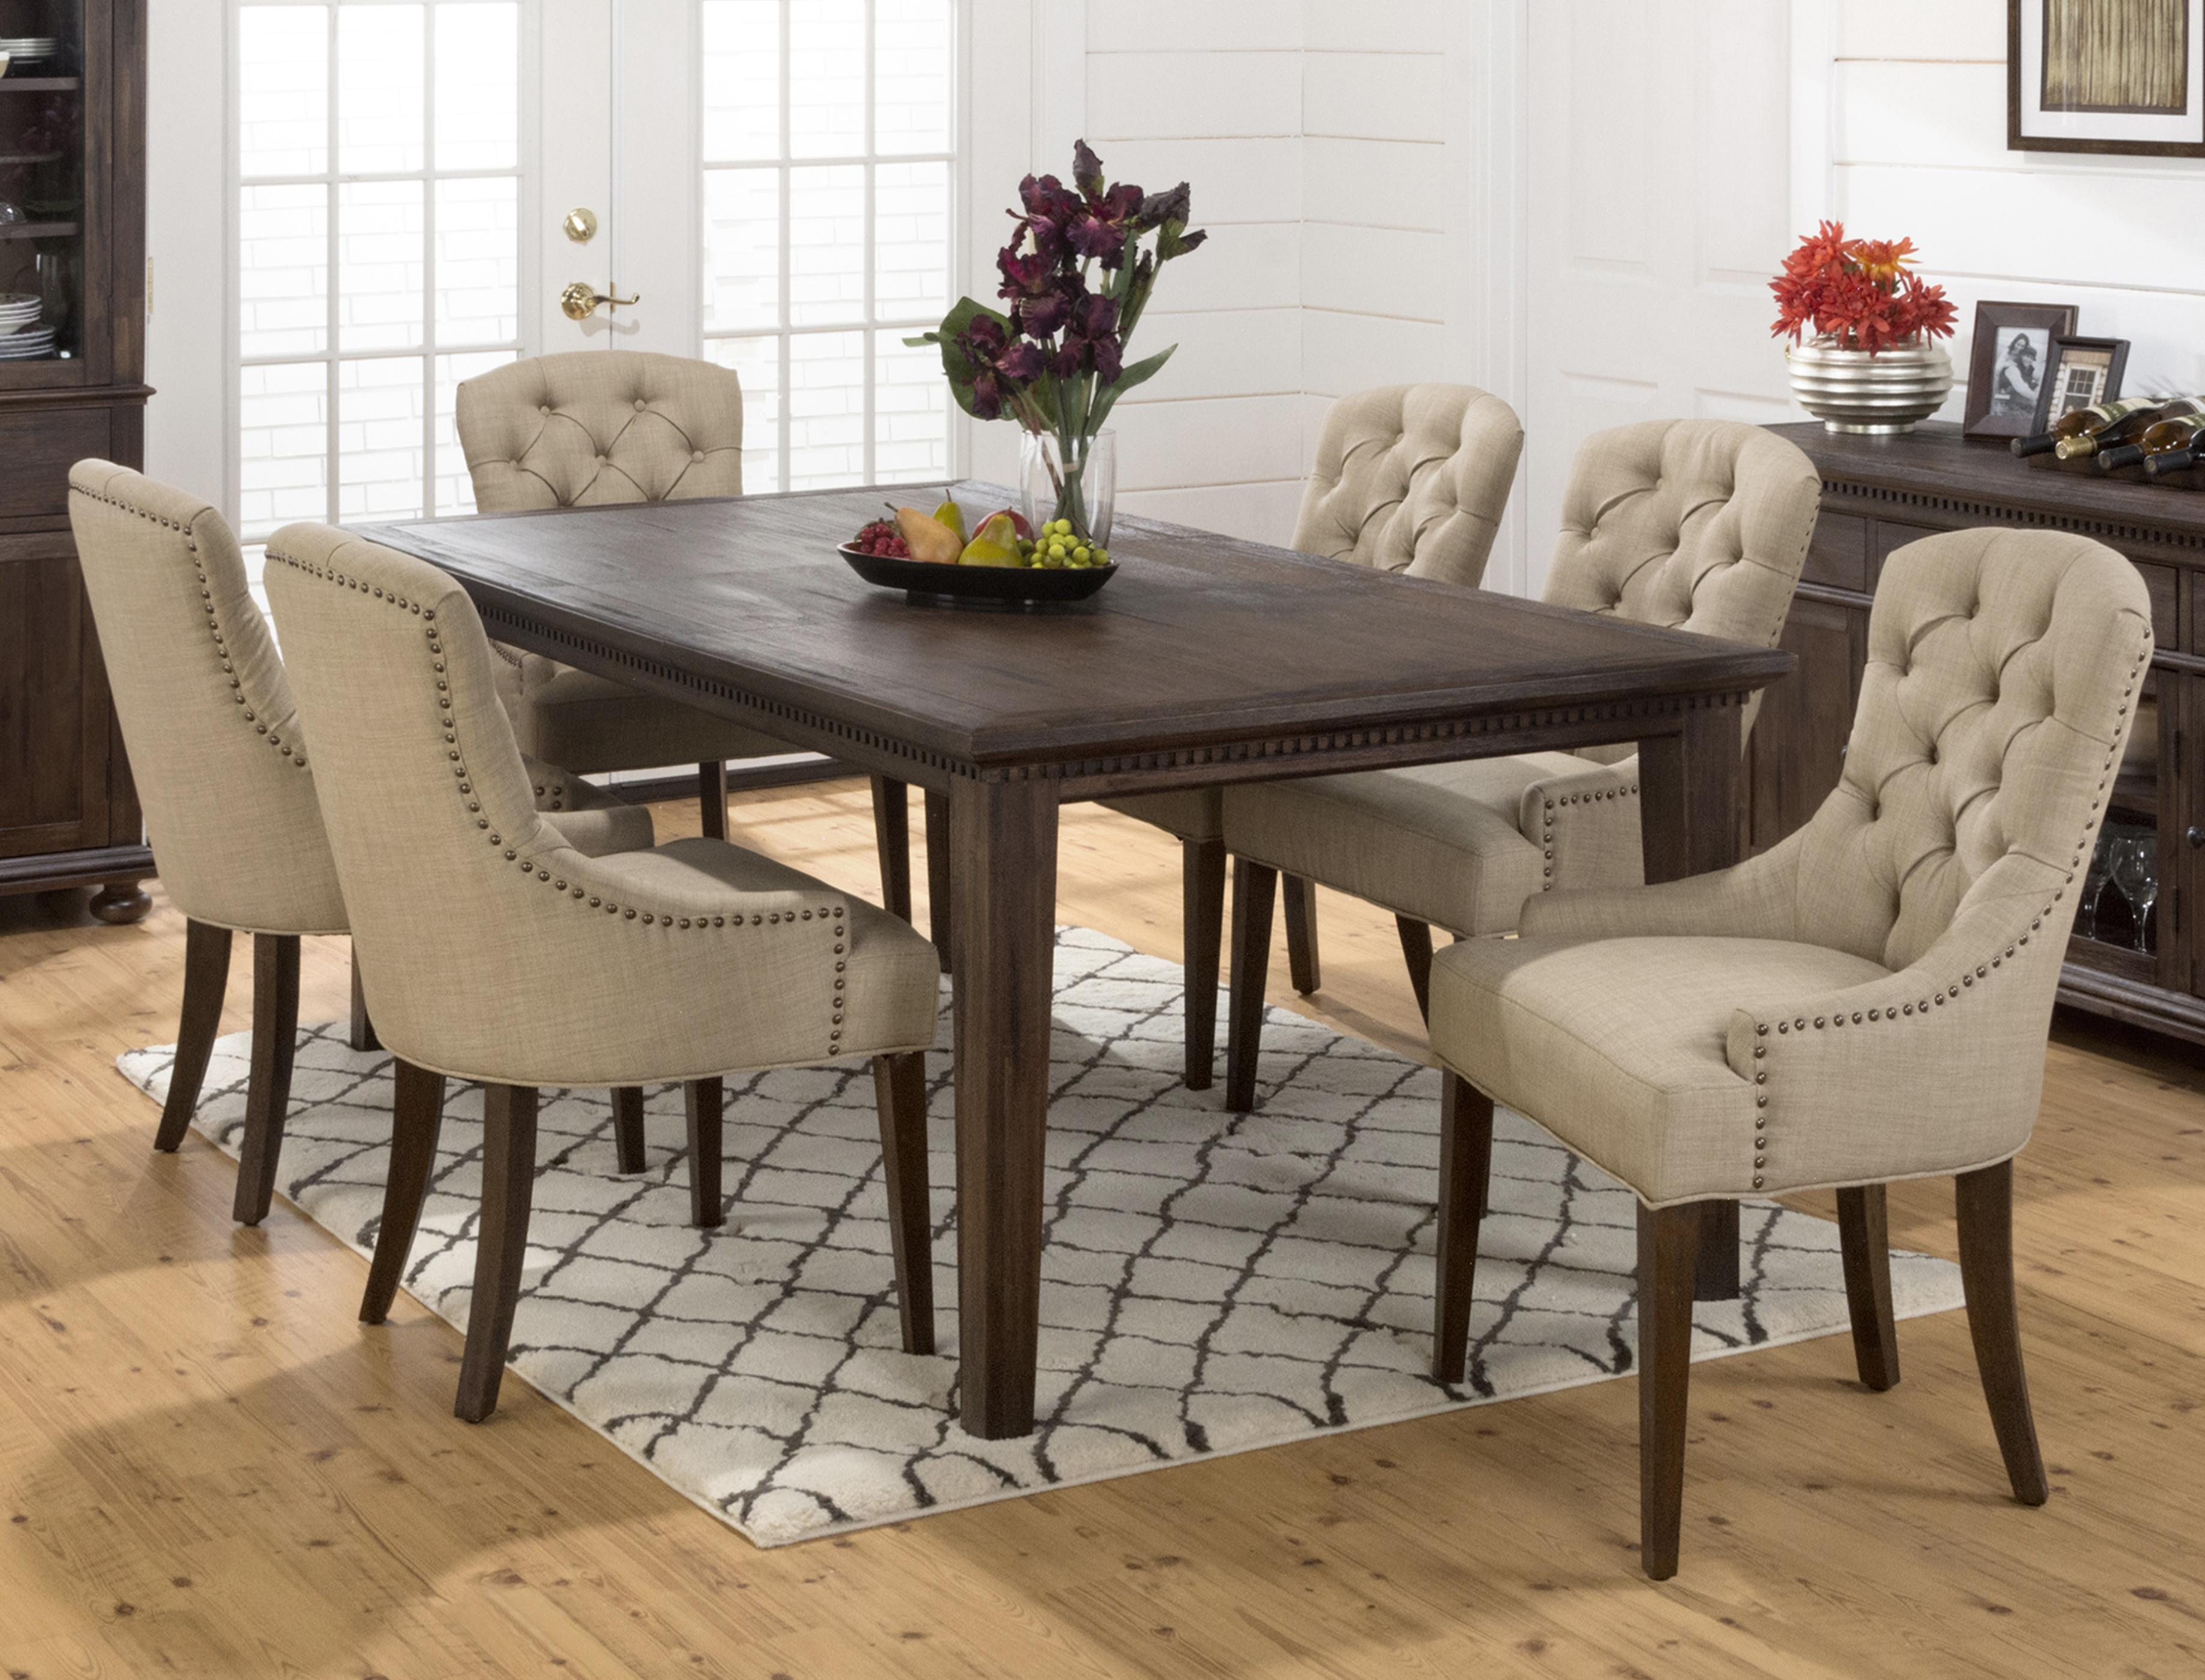 Dining Room Chairs Set Of 4 Geneva Hills Large Table And Upholstered Chair Set By Jofran At Rooms For Less